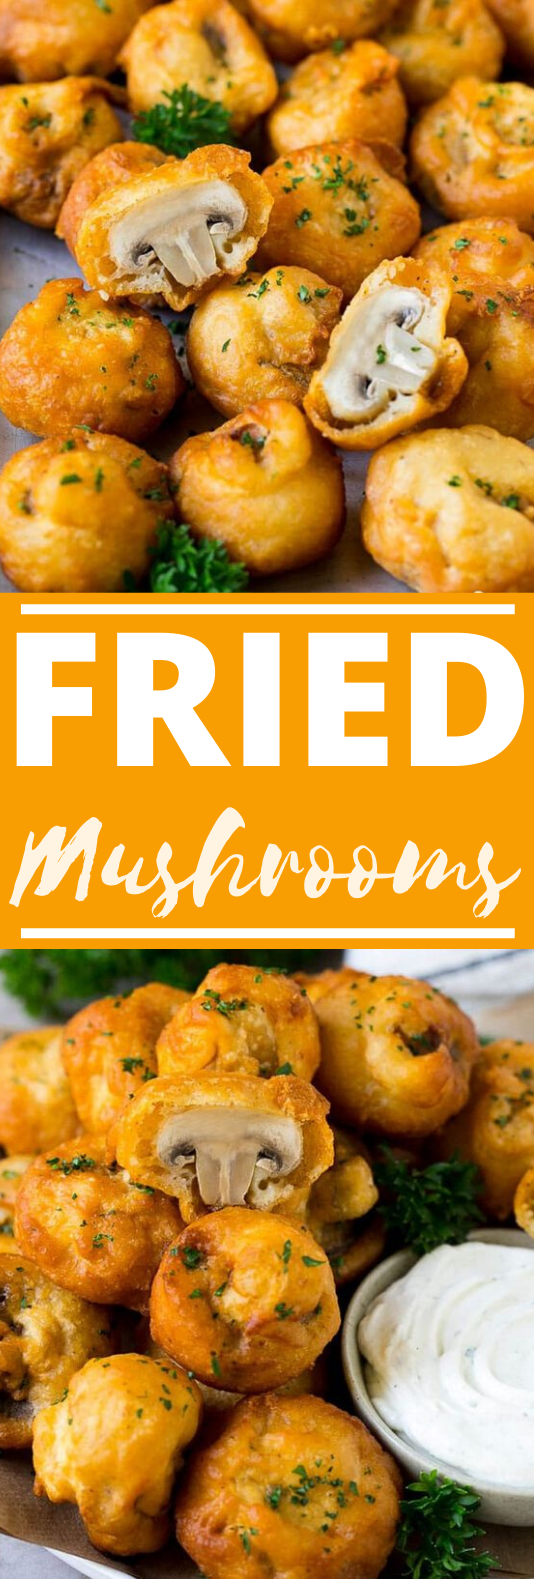 Fried Mushrooms #vegetarian #appetizers #vegan #sidedish #fingerfood